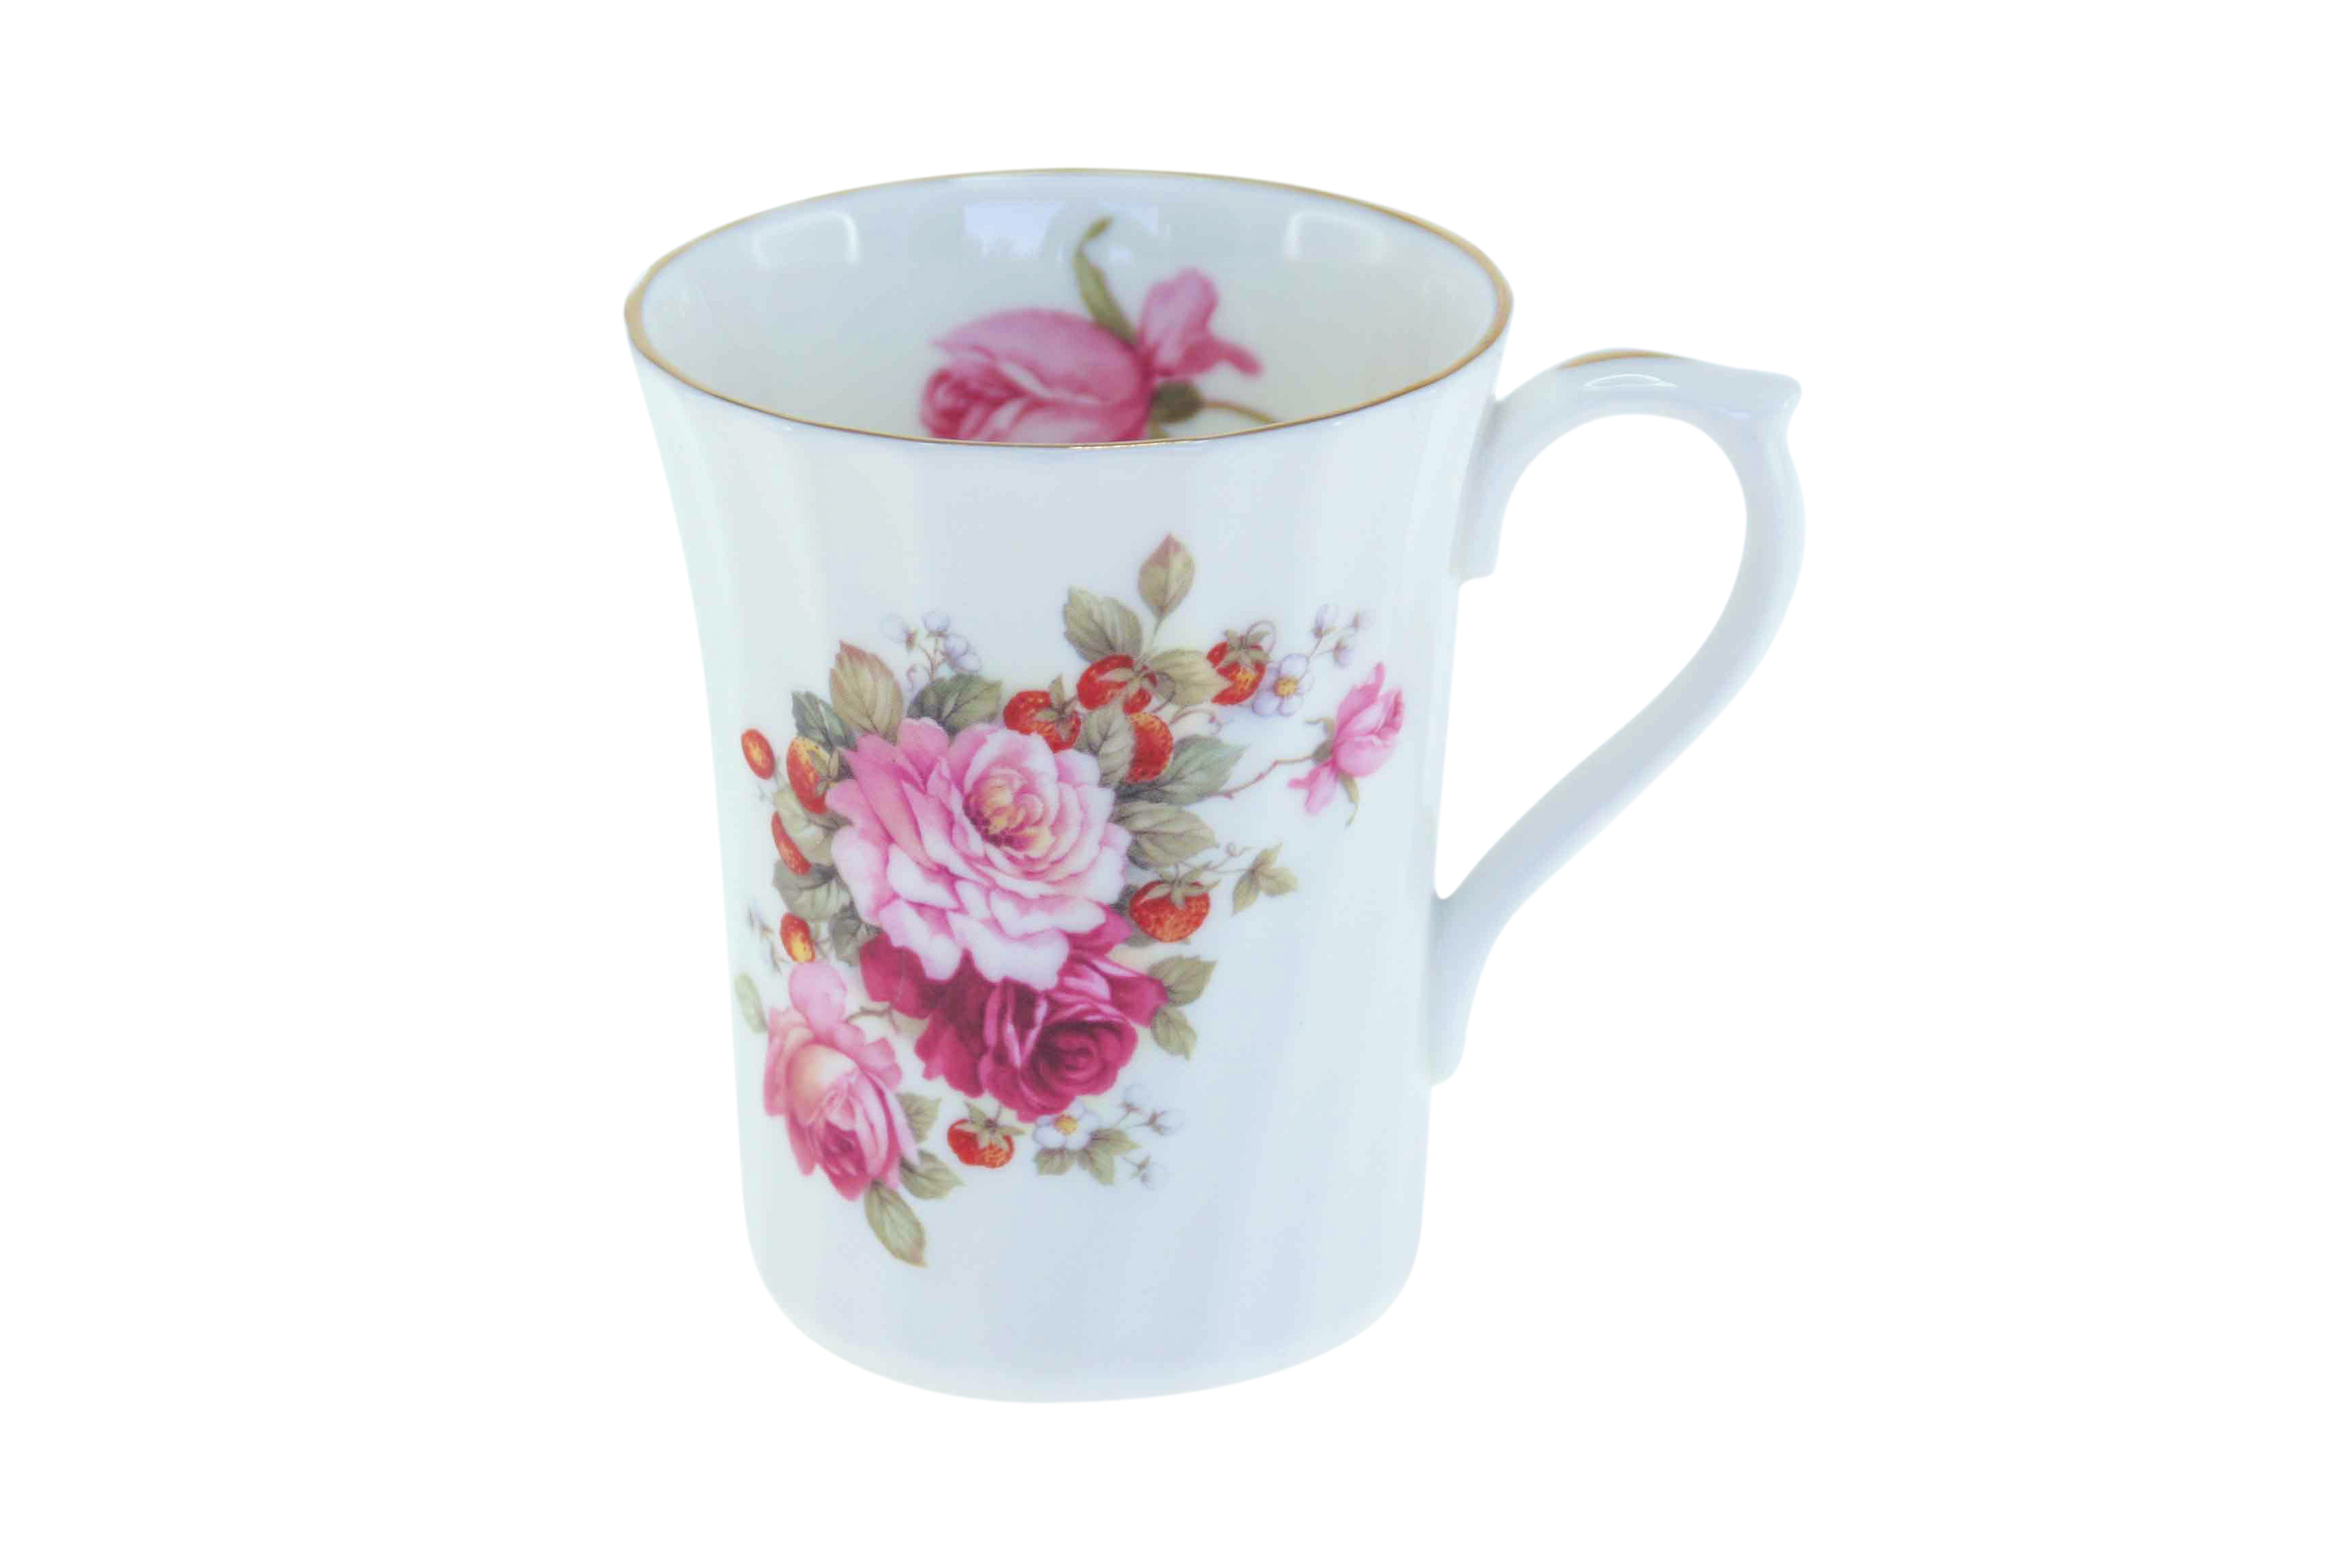 Strawberry Rose Swirl Mug